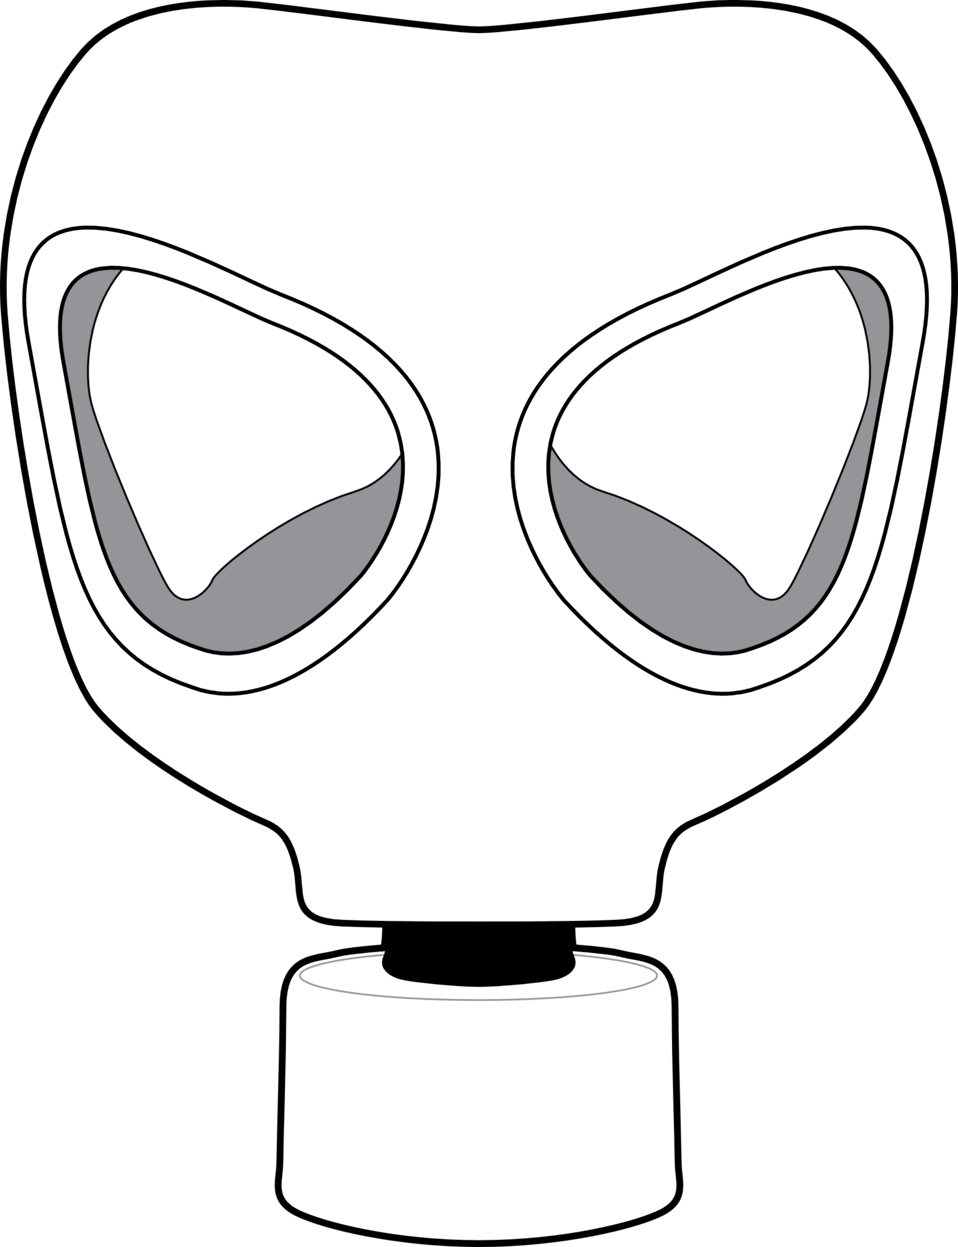 Mask clipart gas mask. Public domain clip art